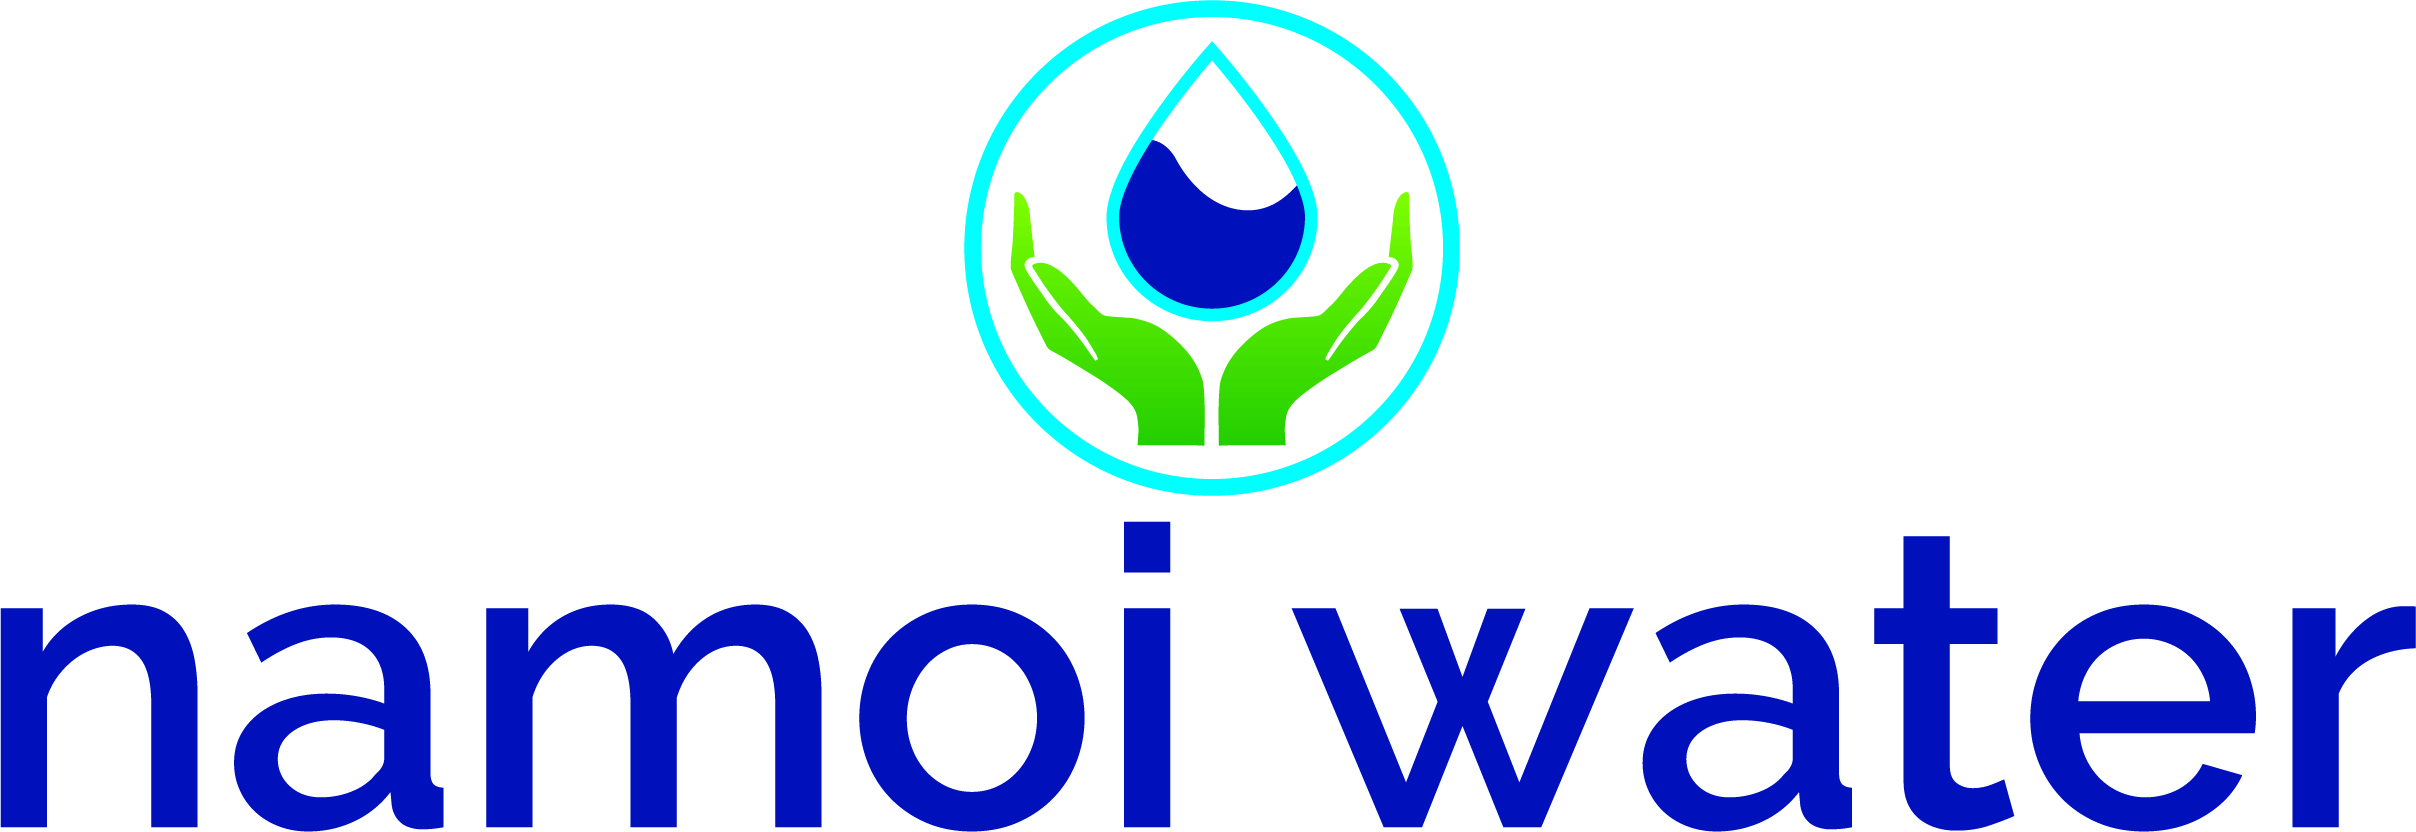 NamoiWaterLOGO_FULL.jpg